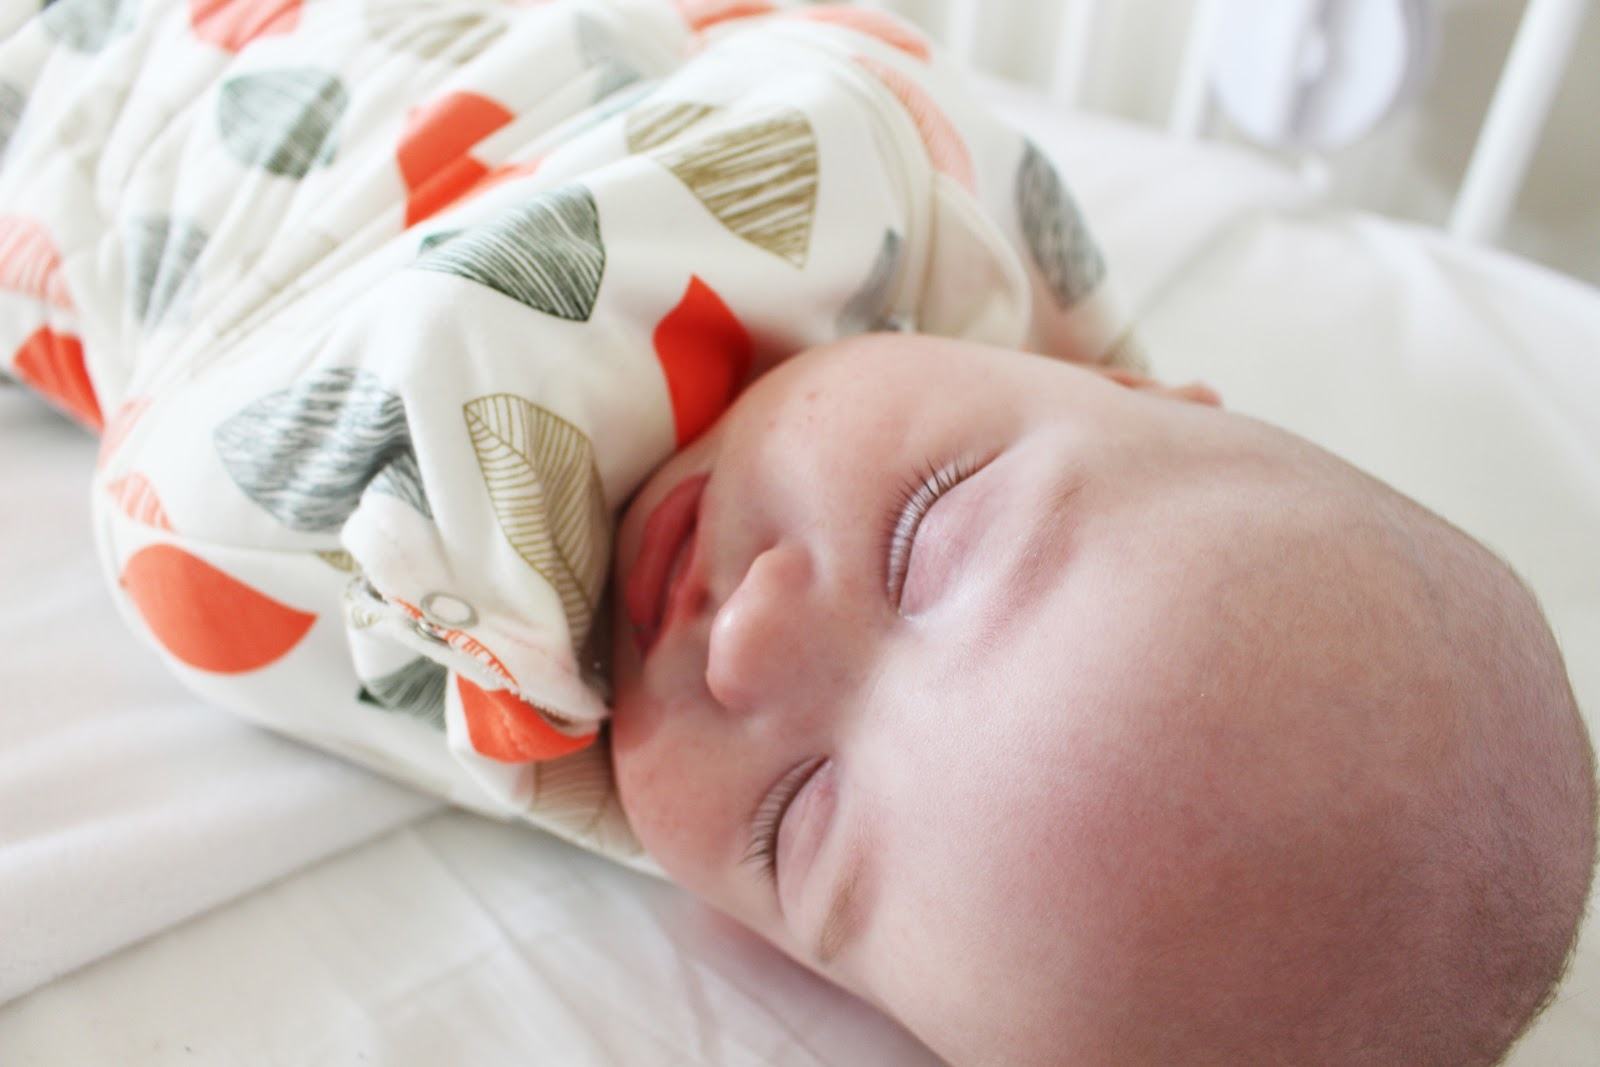 Should We Be Swaddling At 5 Months Old? | An ErgoCocoon Winter Swaddle Review